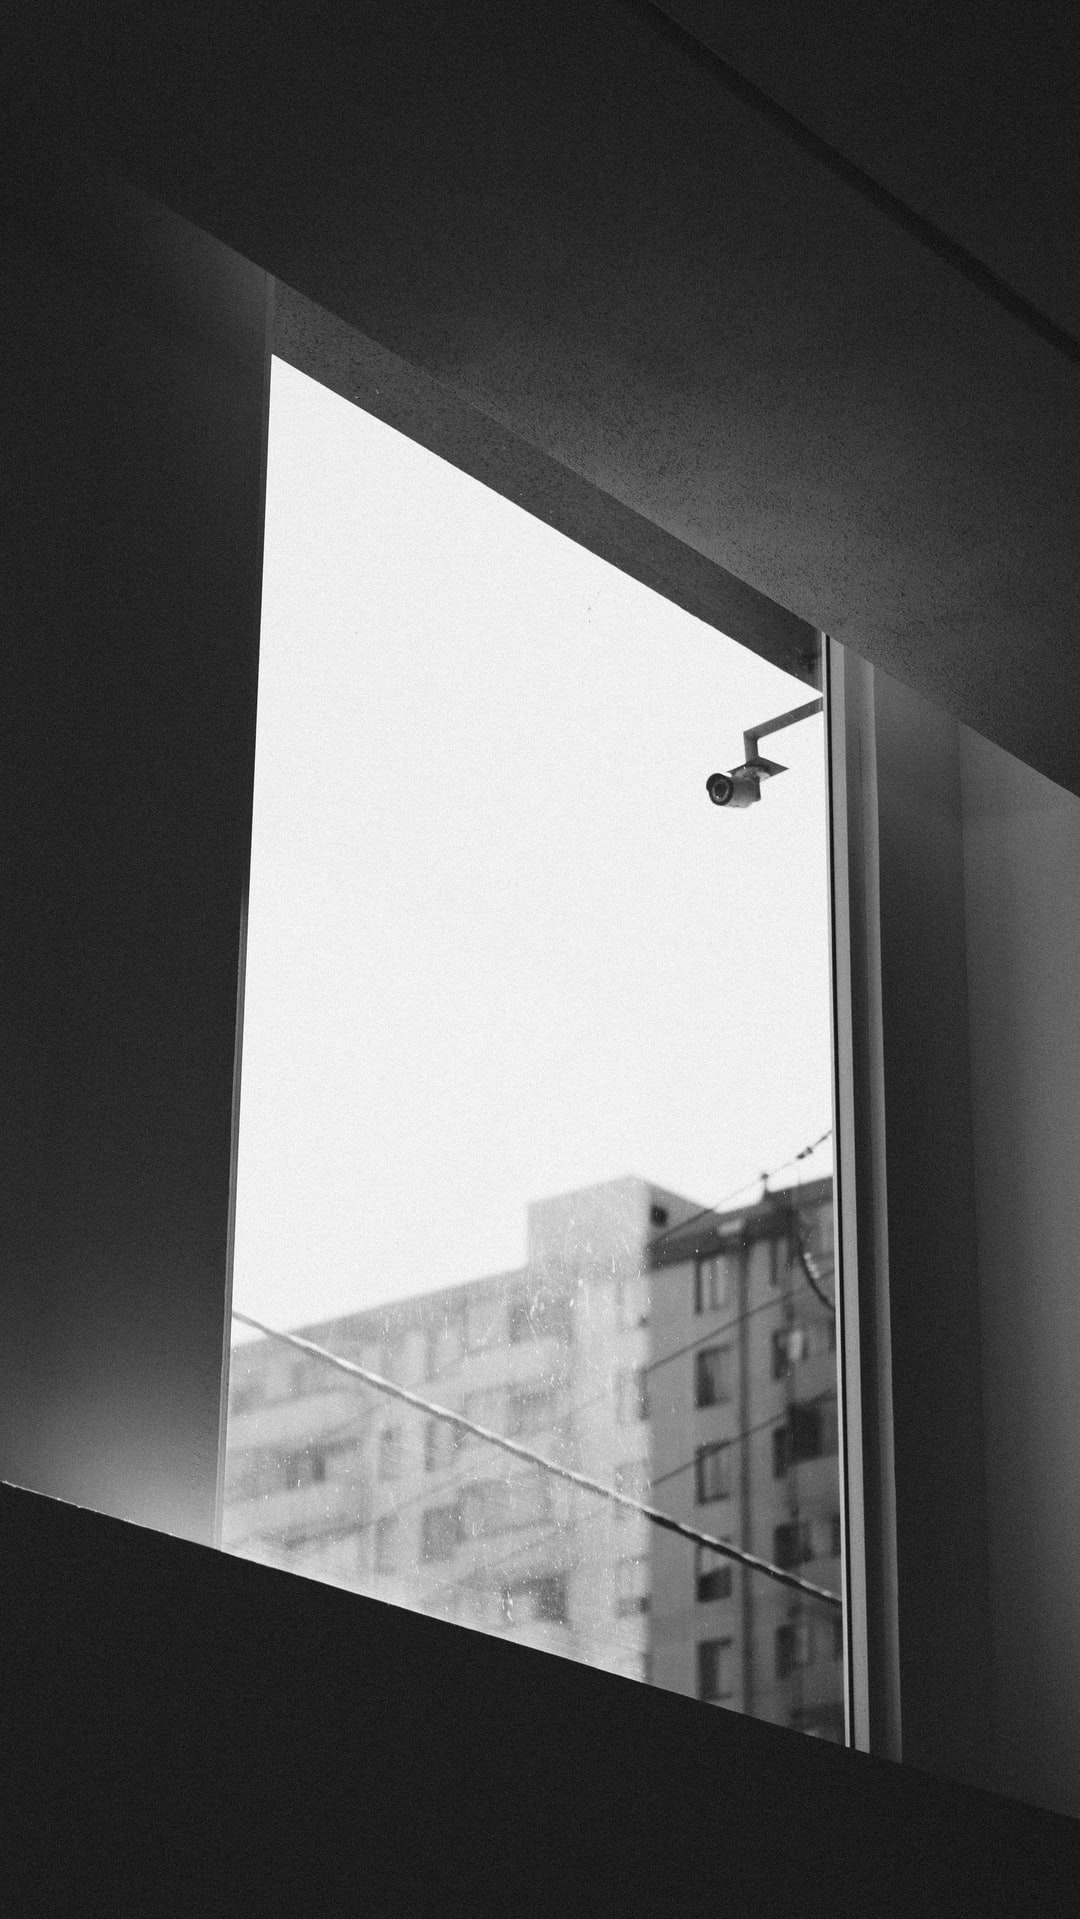 Black and white minimal surveillance camera watching over you.